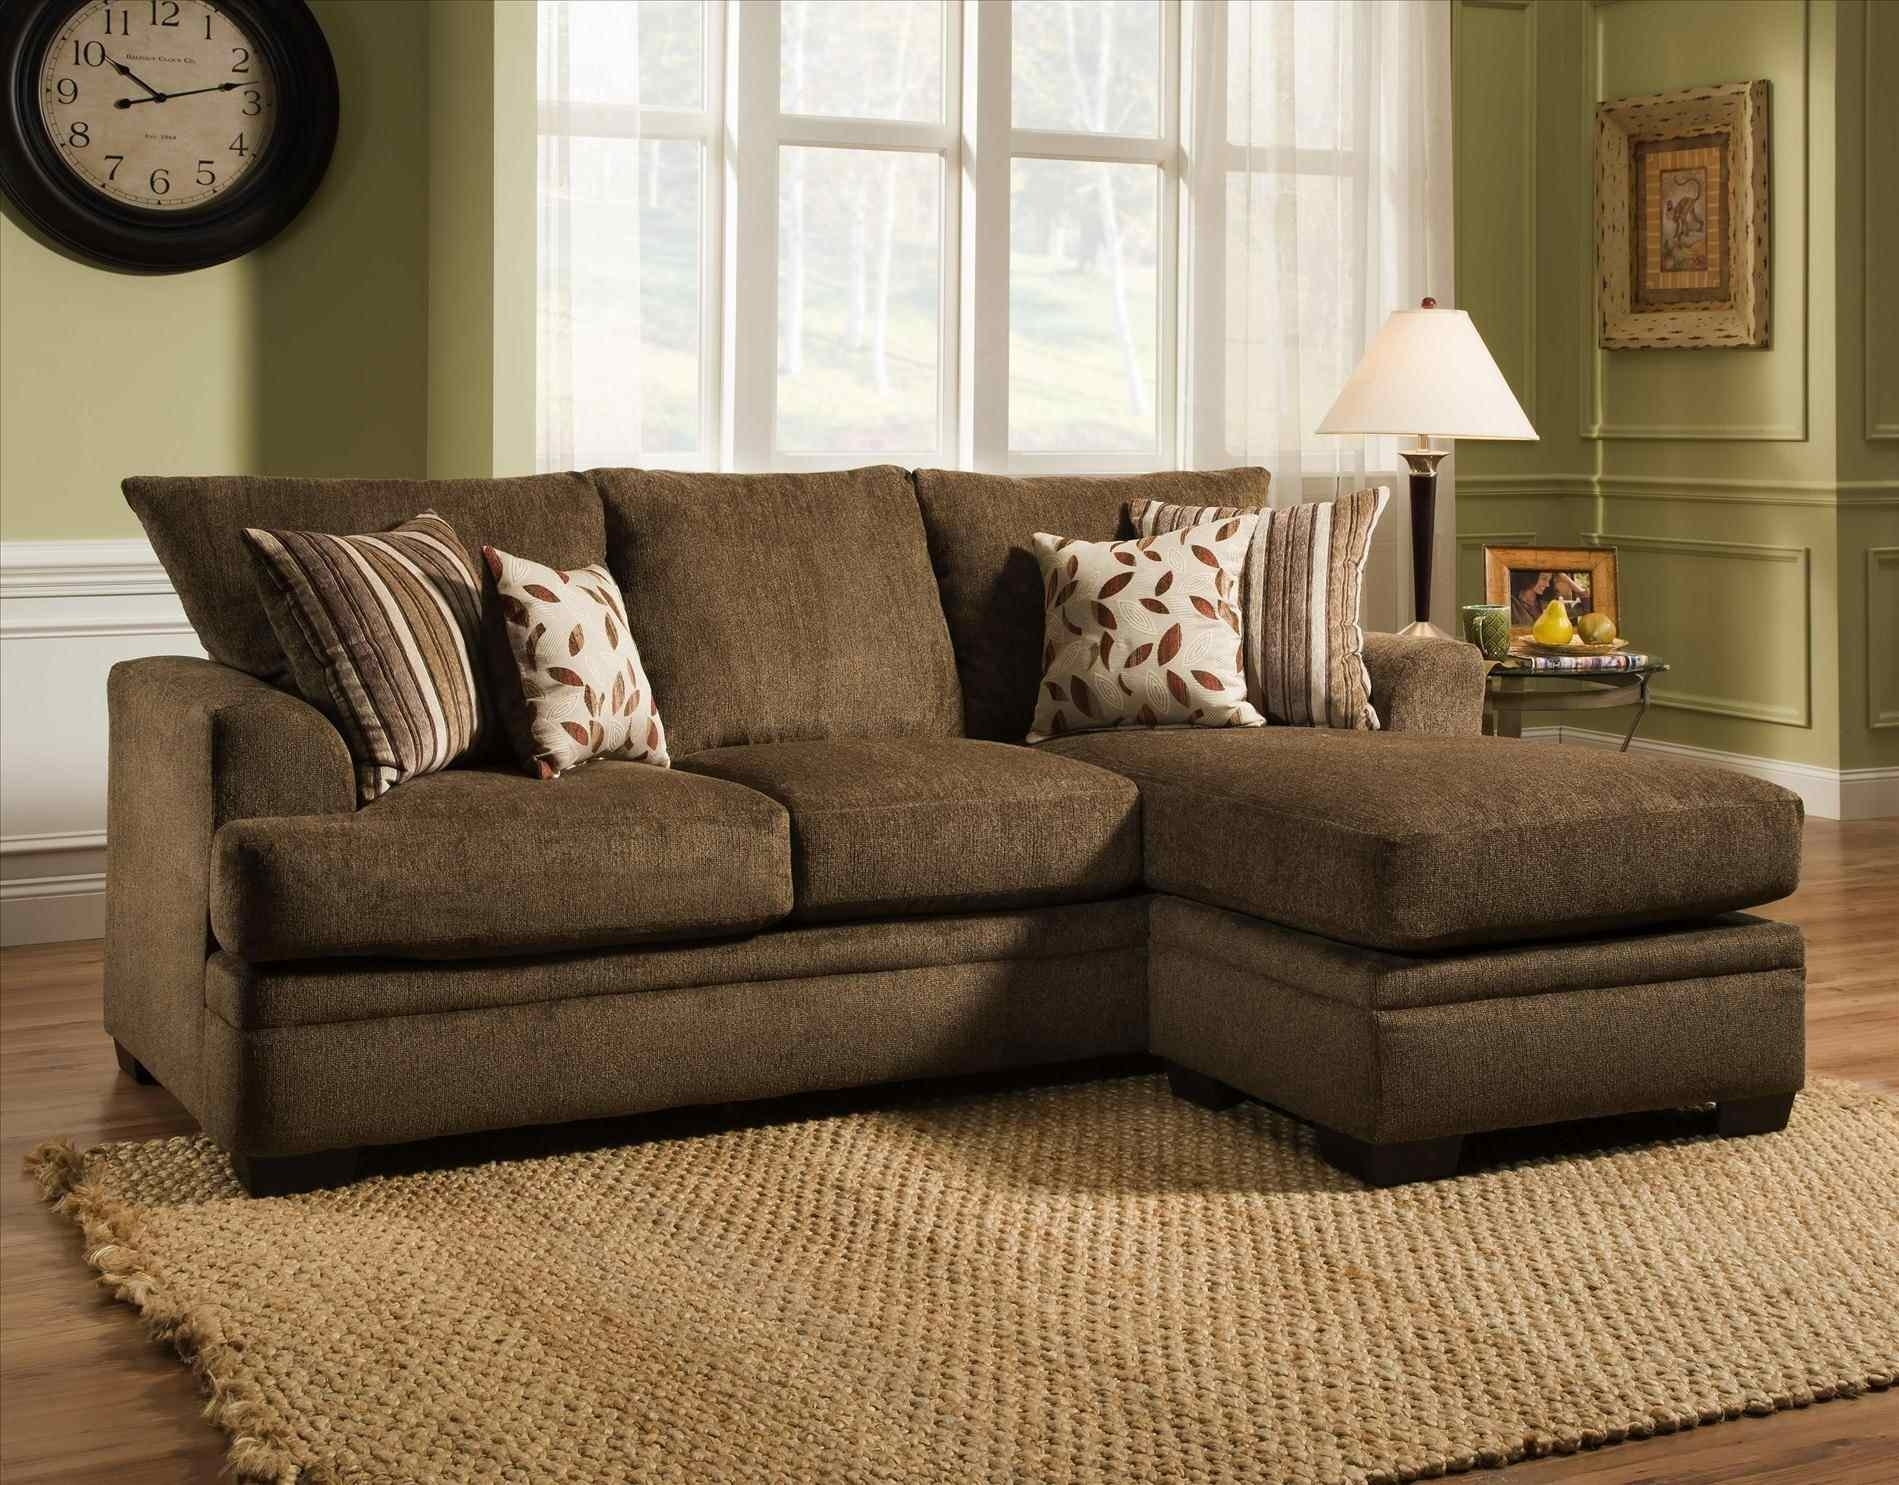 Sofa : Furniture Sofa Bernhardt Sectional Brilliant Brae Mathis intended for Dayton Ohio Sectional Sofas (Image 8 of 10)